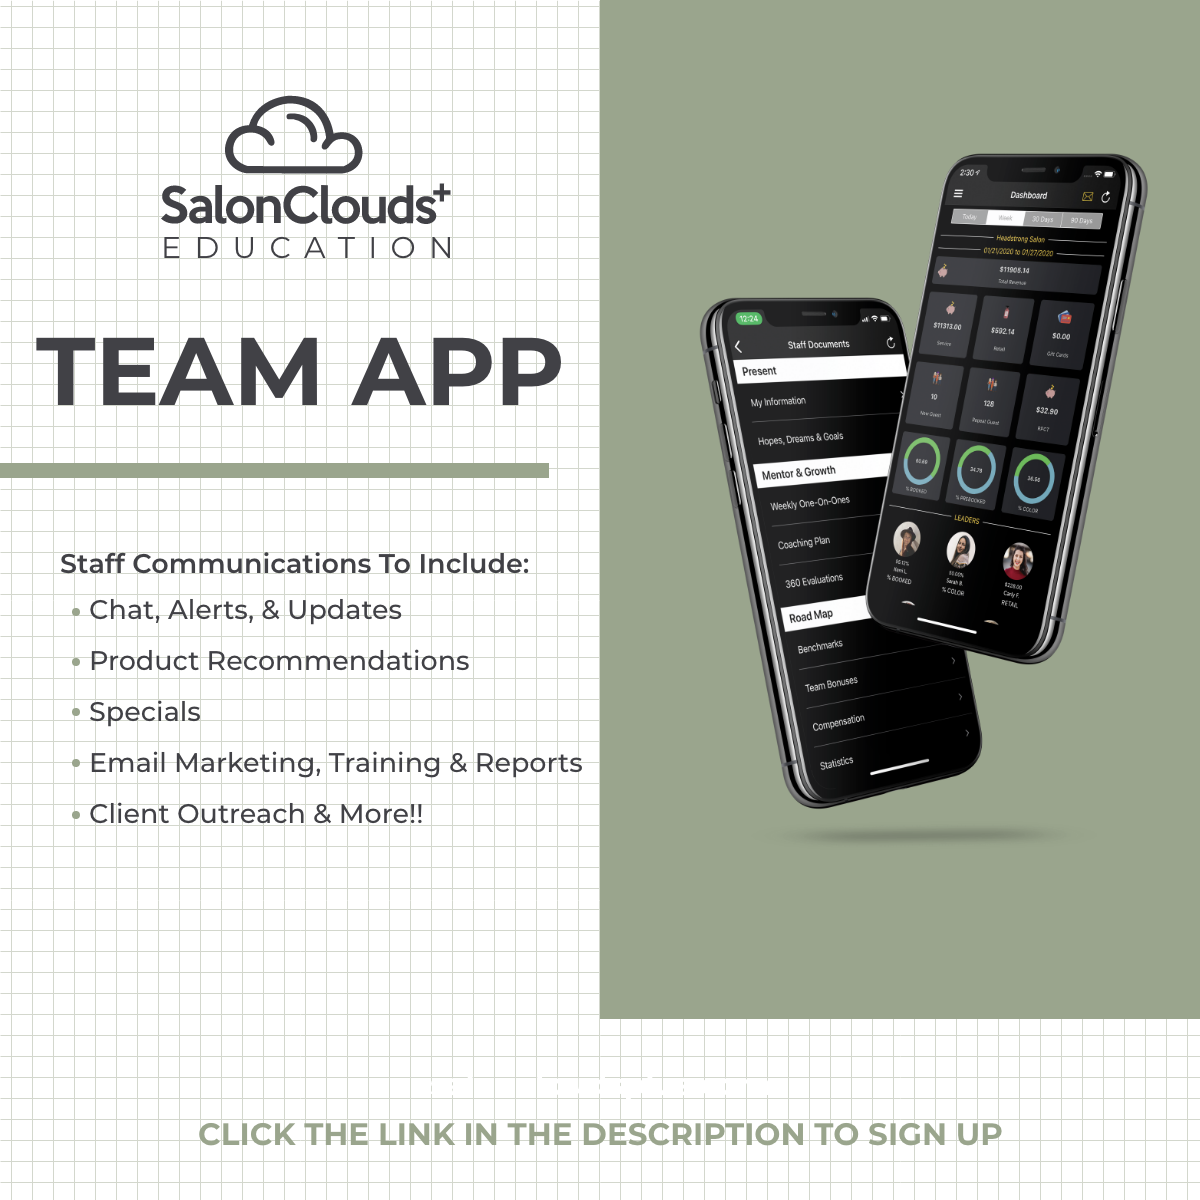 Monday, August 31st, 2020--Team APP Training Webinar